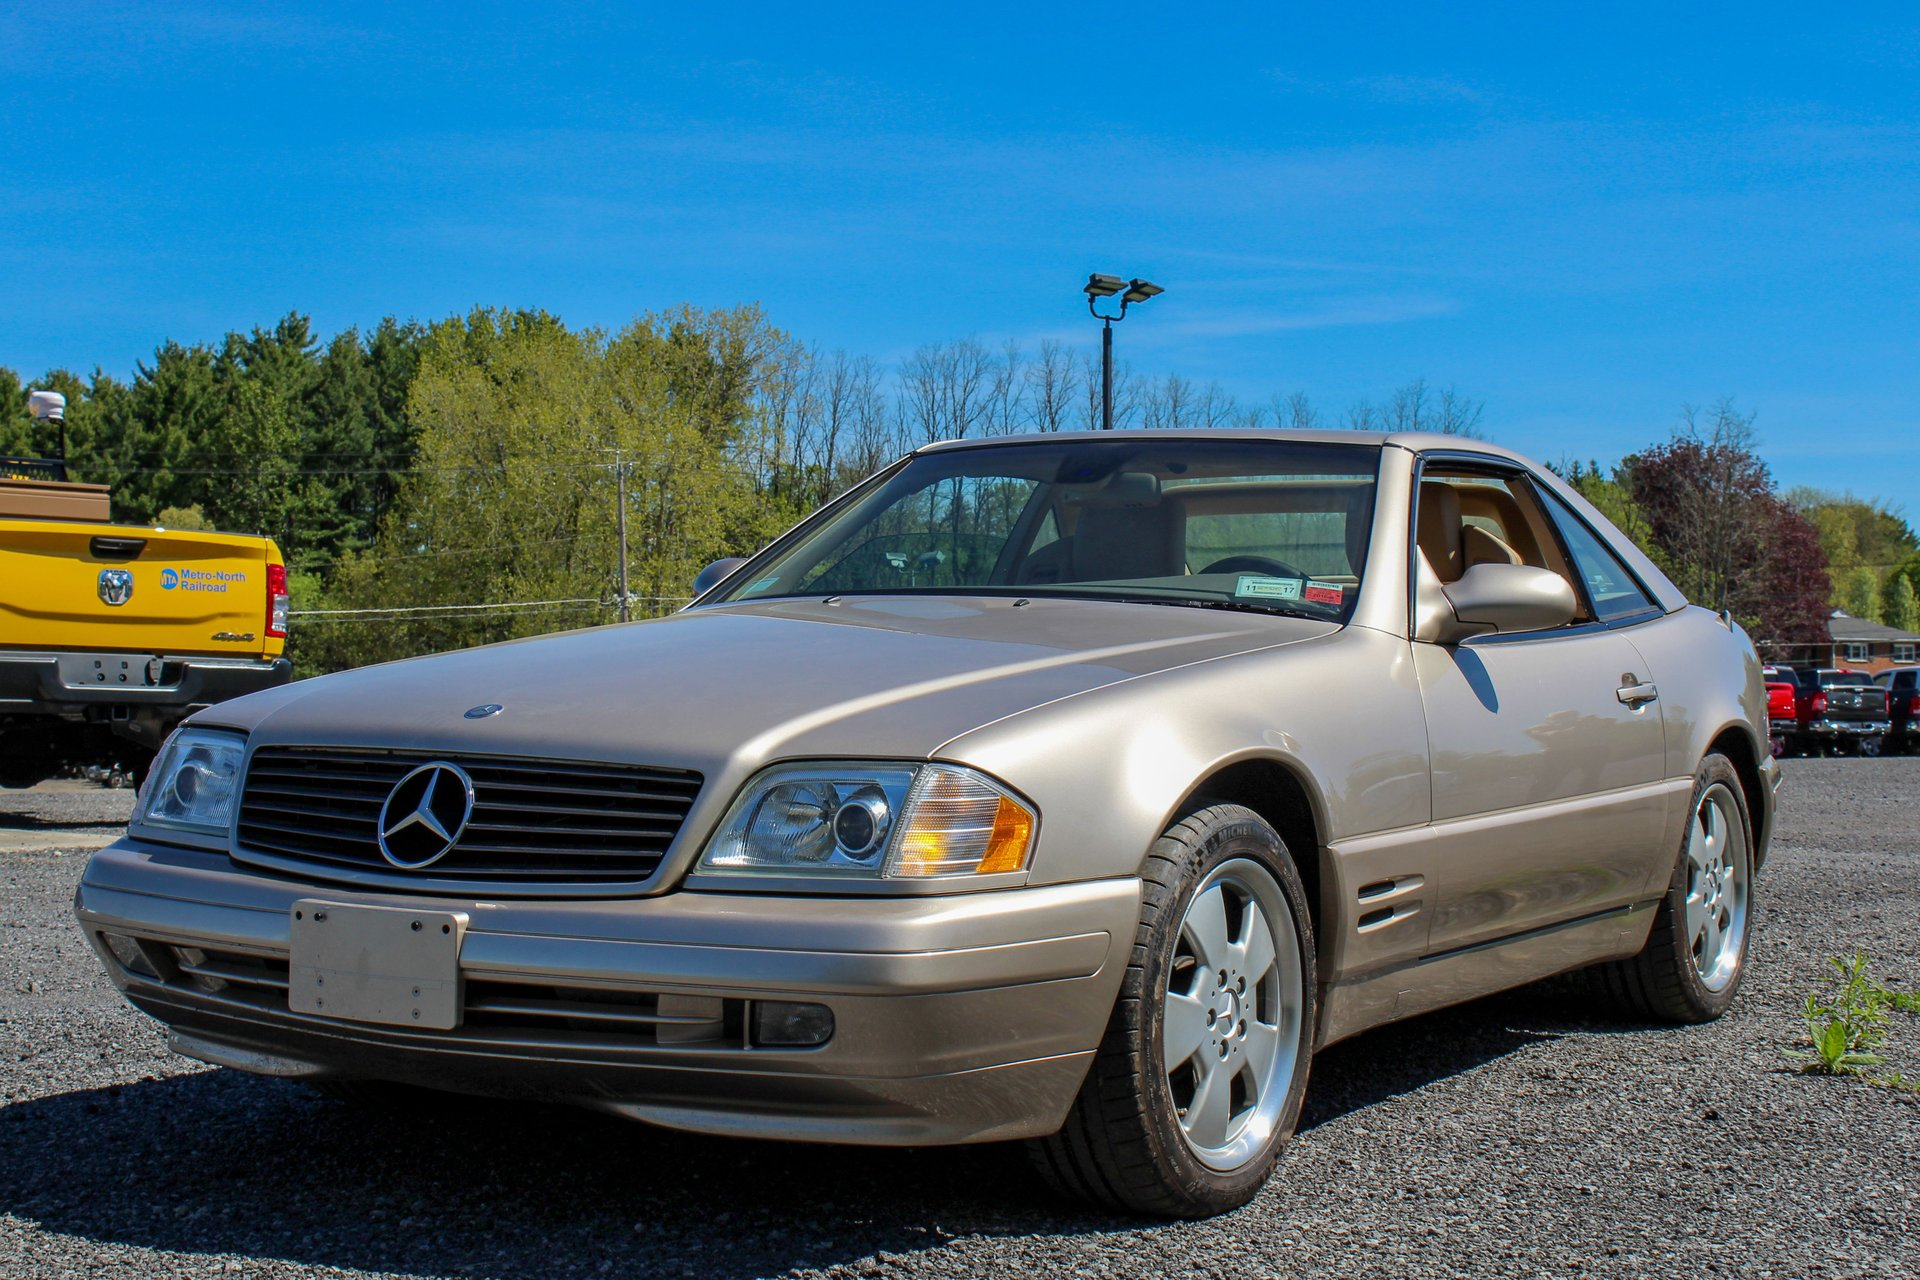 2000 mercedes benz sl500 for sale 190990 motorious motorious